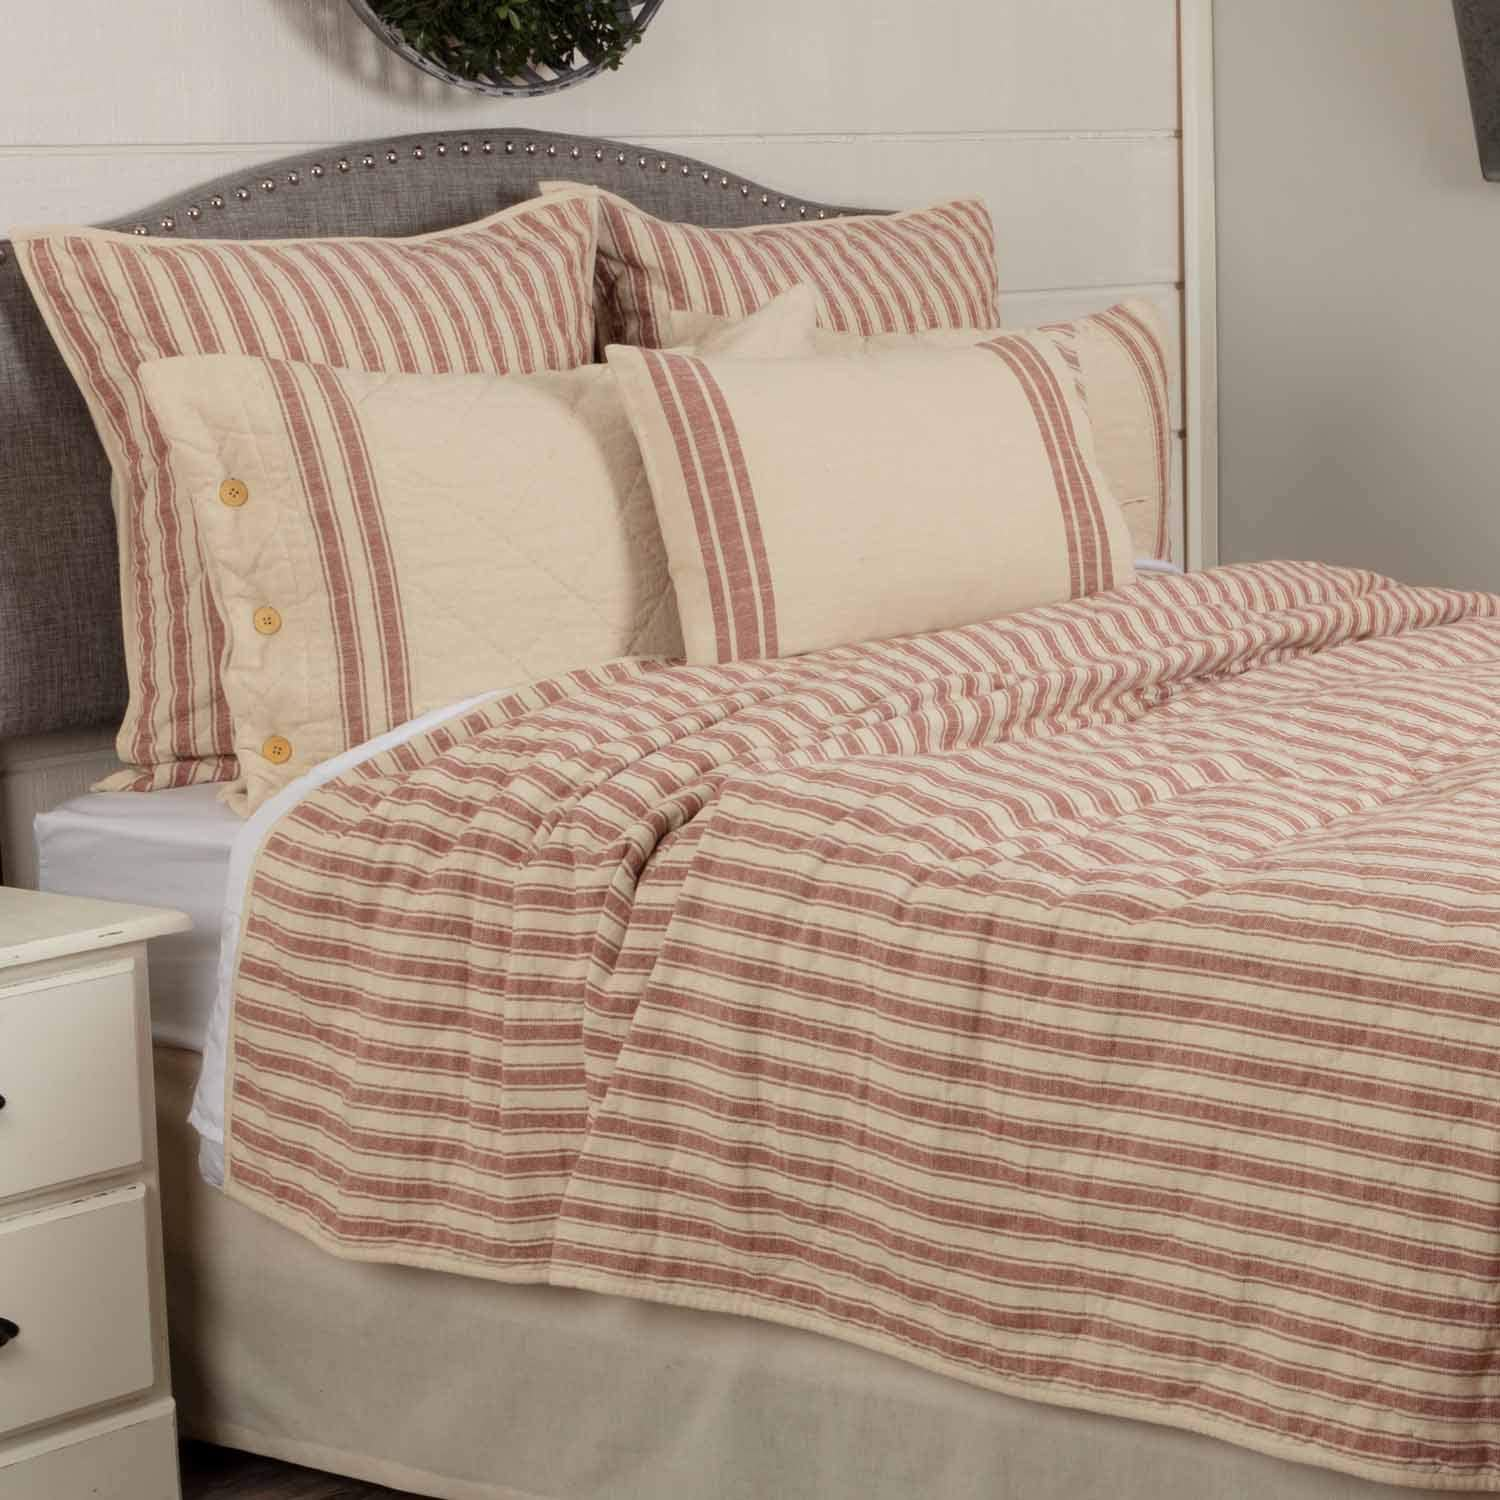 Amazon Com Piper Classics Market Place Red Ticking Stripe Quilt Luxury King 105 X 120 Oversized Red Cream Quilted Farmhouse Style Bedding Kitchen Dining